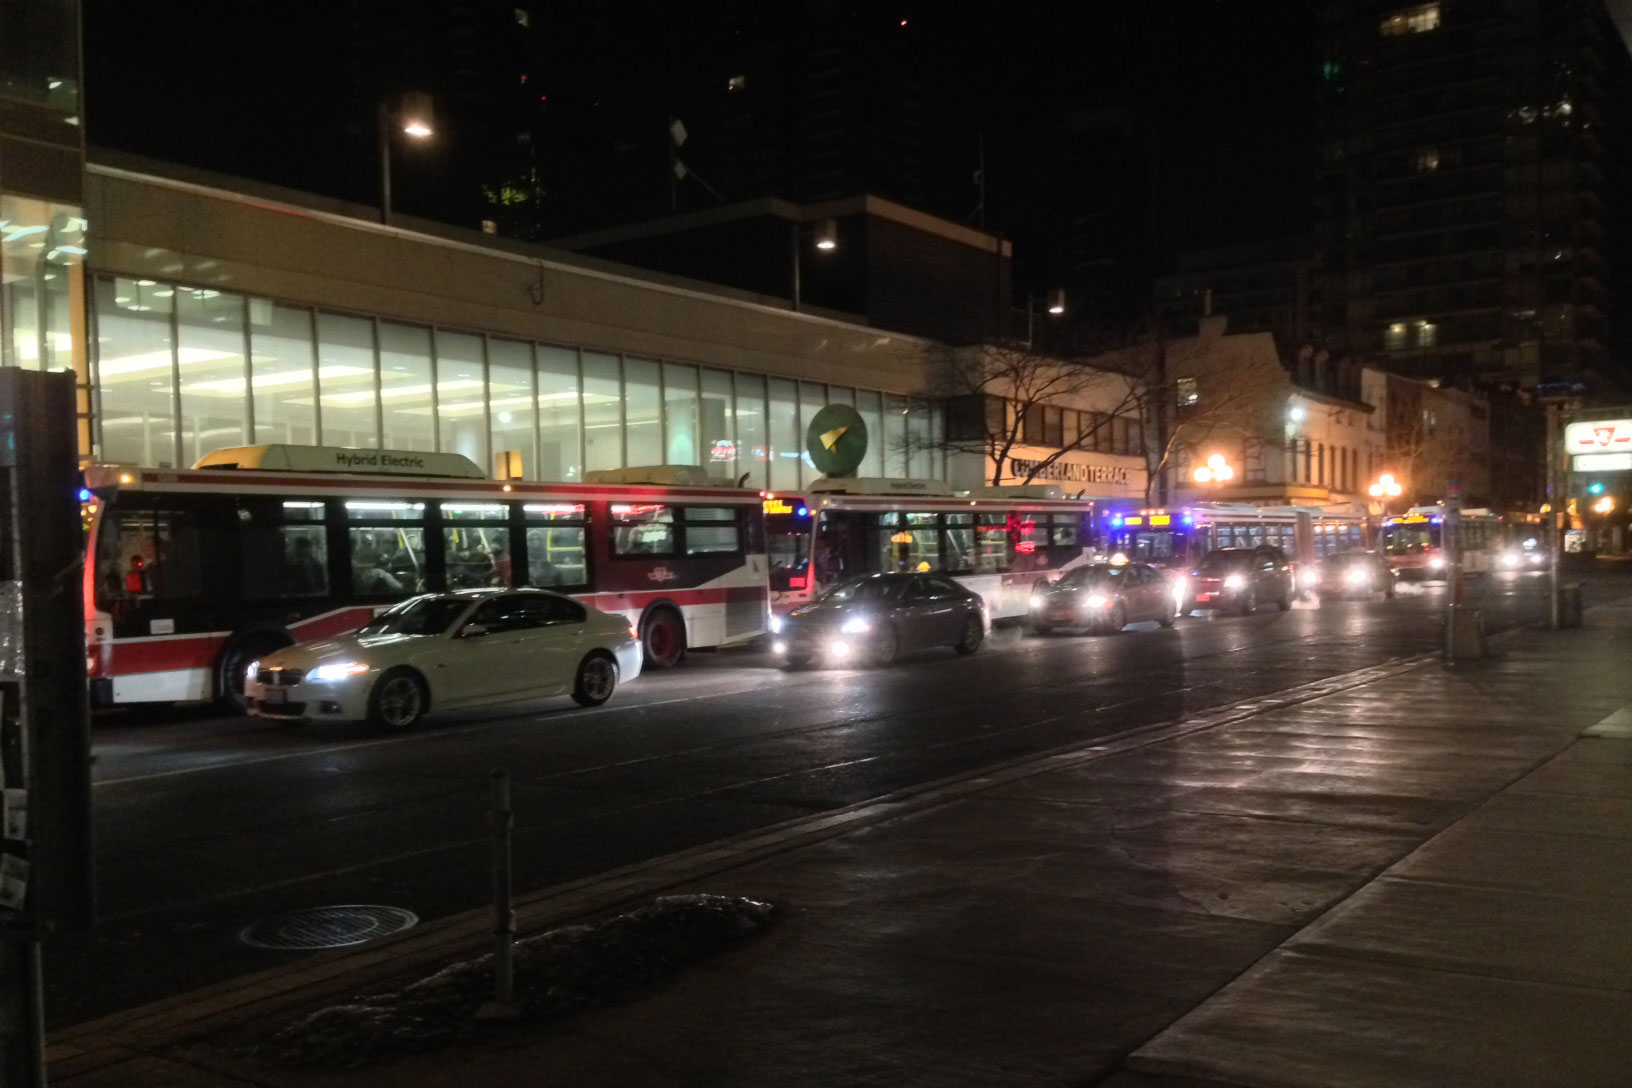 Shuttle buses wait to transport passengers after a subway shutdown between Bloor and Union stations on March 24, 2015. CITYNEWS/Bert Dandy